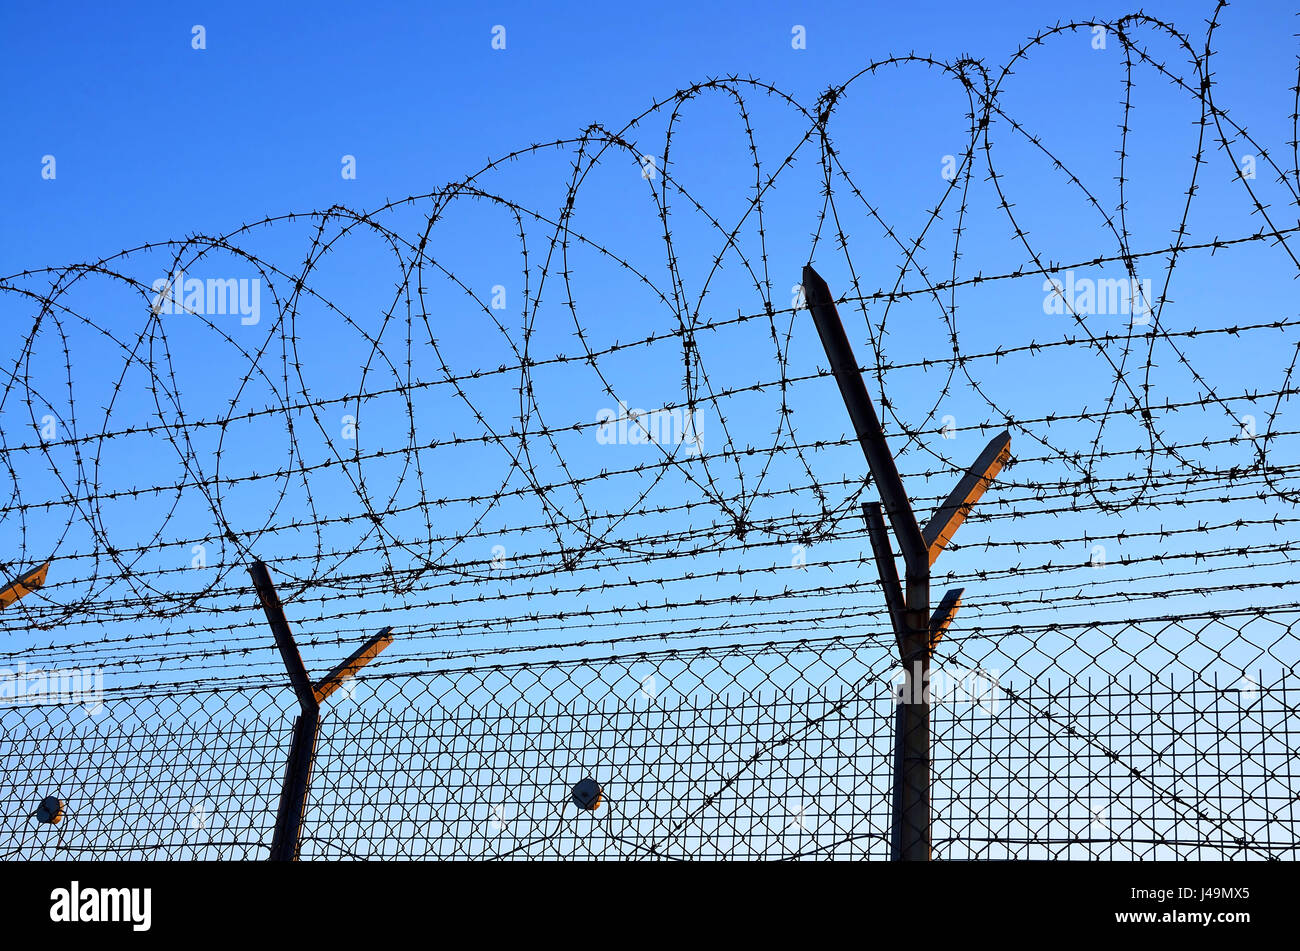 Fence with barbed wire on the blue sky. - Stock Image